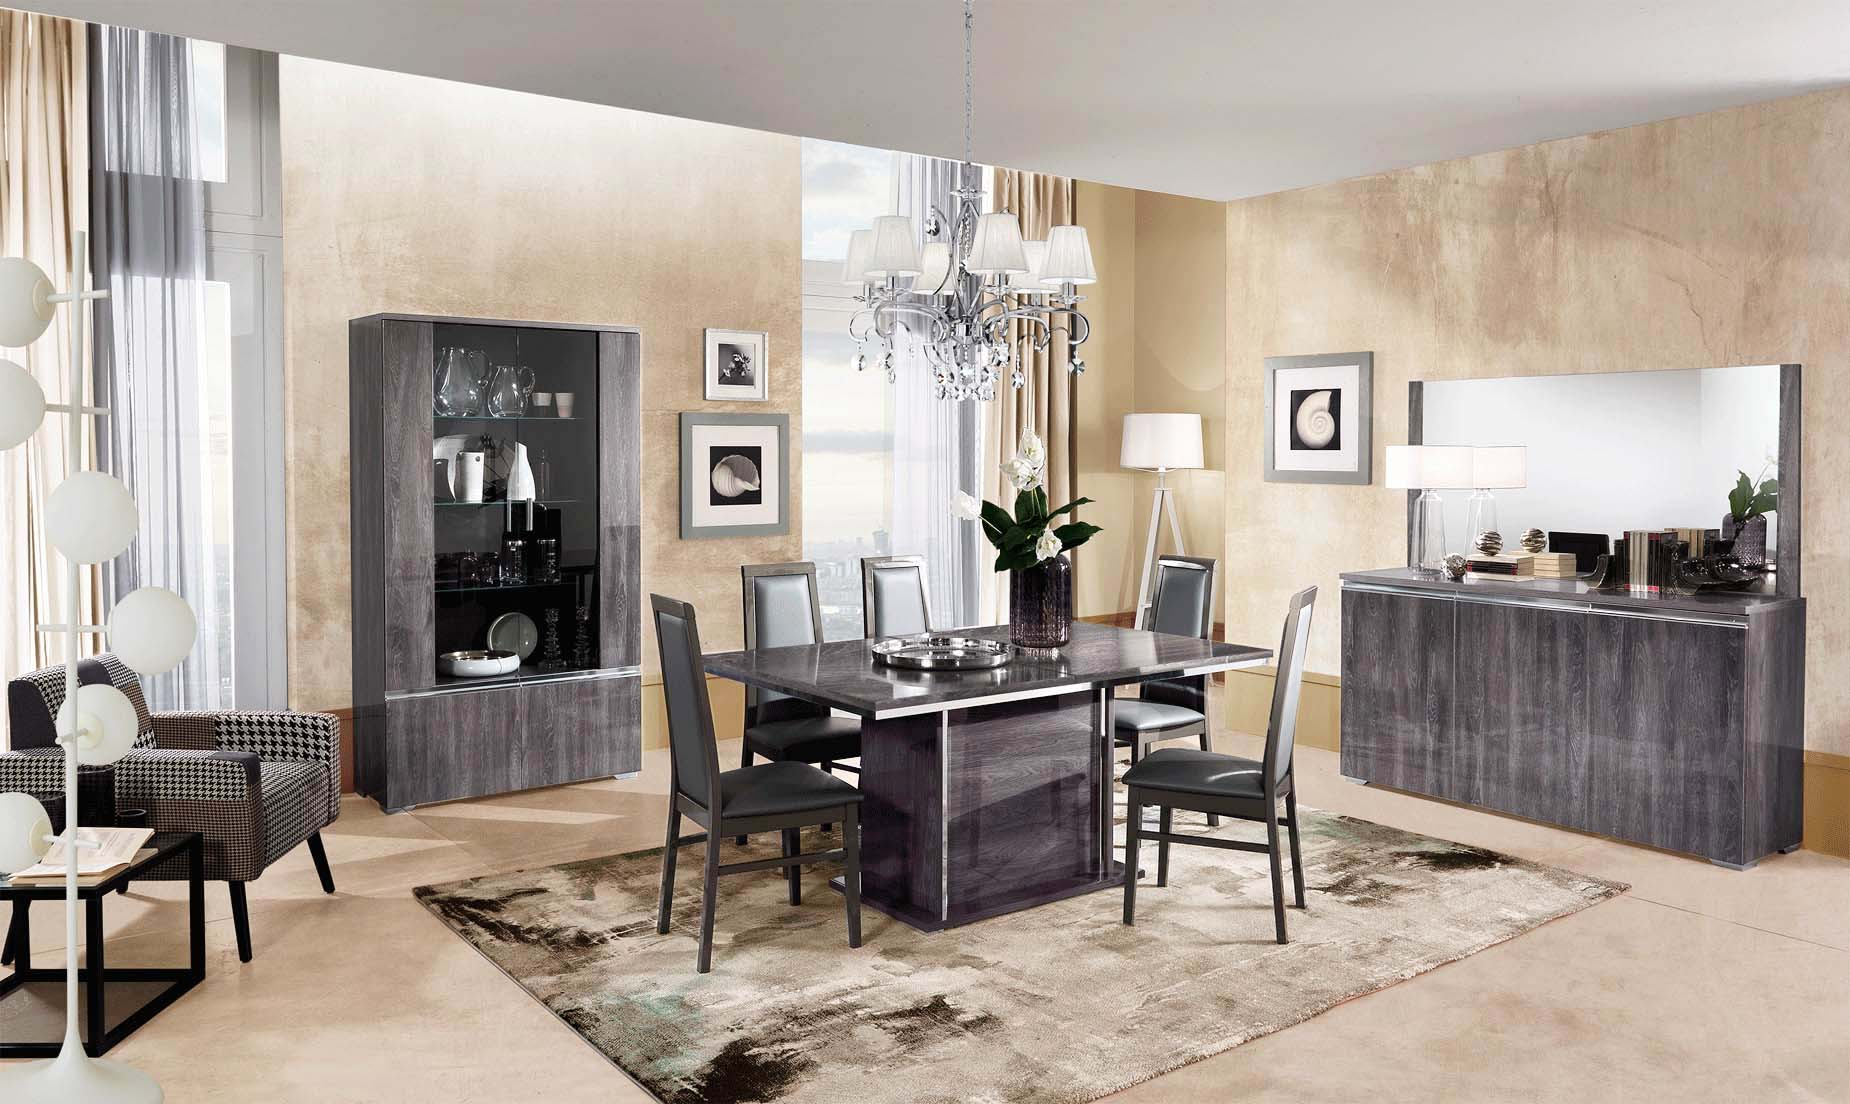 Oxford Dining Modern Room Sets, Modern Dining Room Sets With Buffet